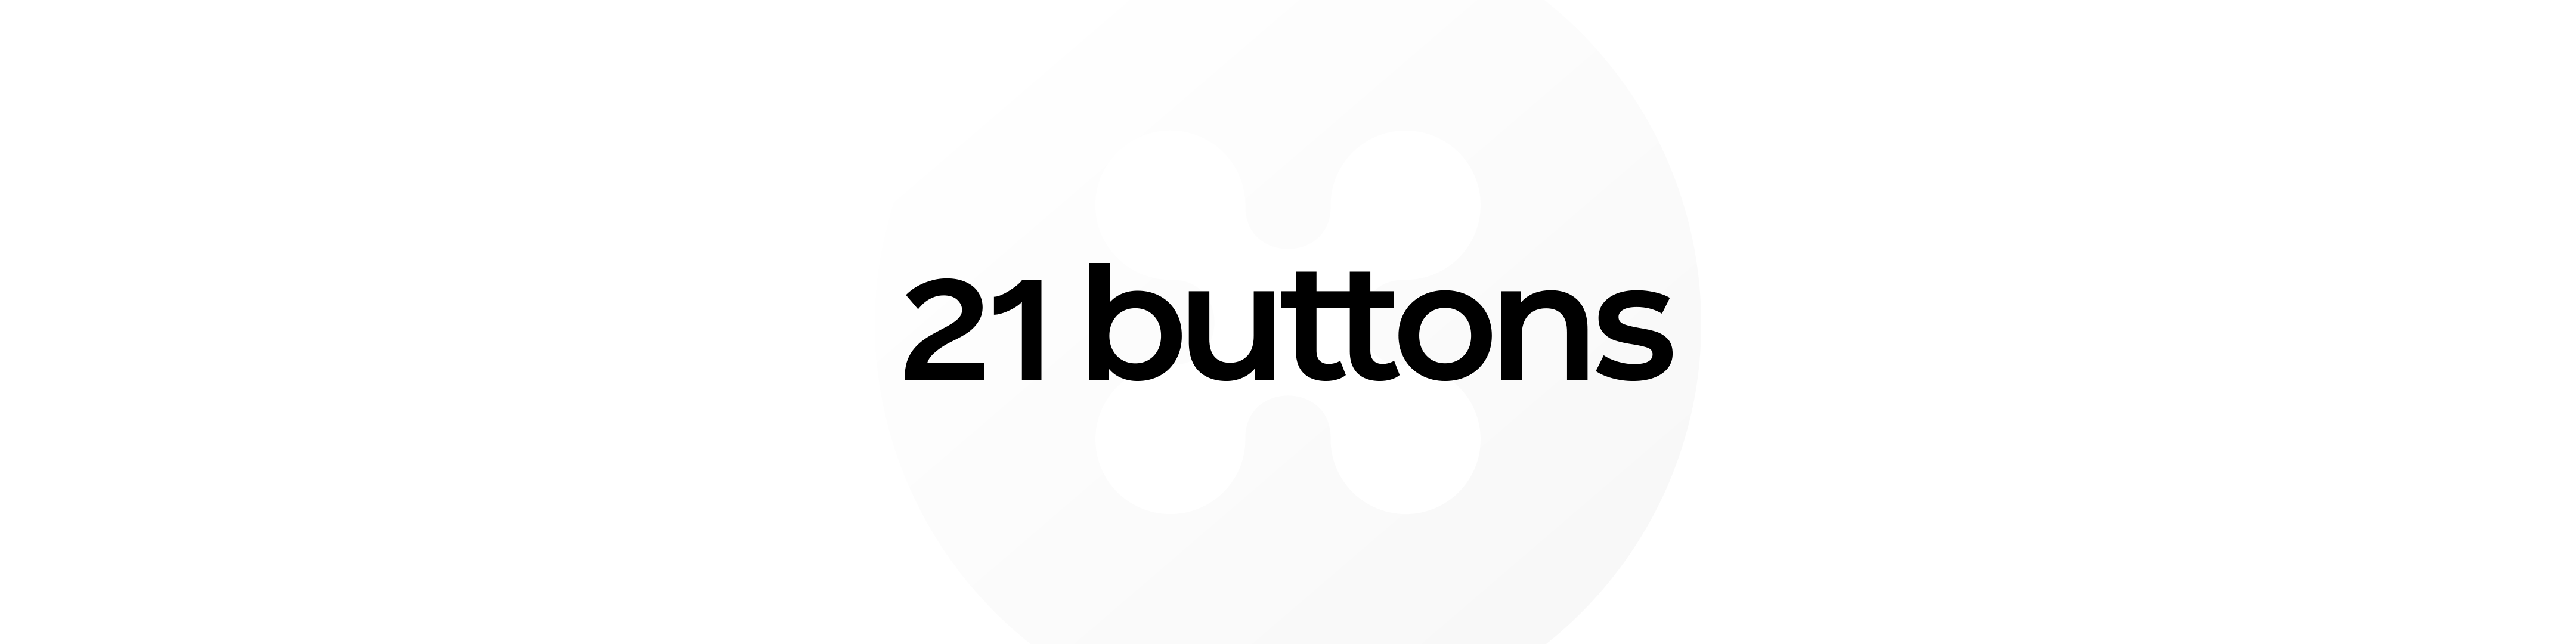 21 Buttons: Fashion & Clothing - Revenue & Download